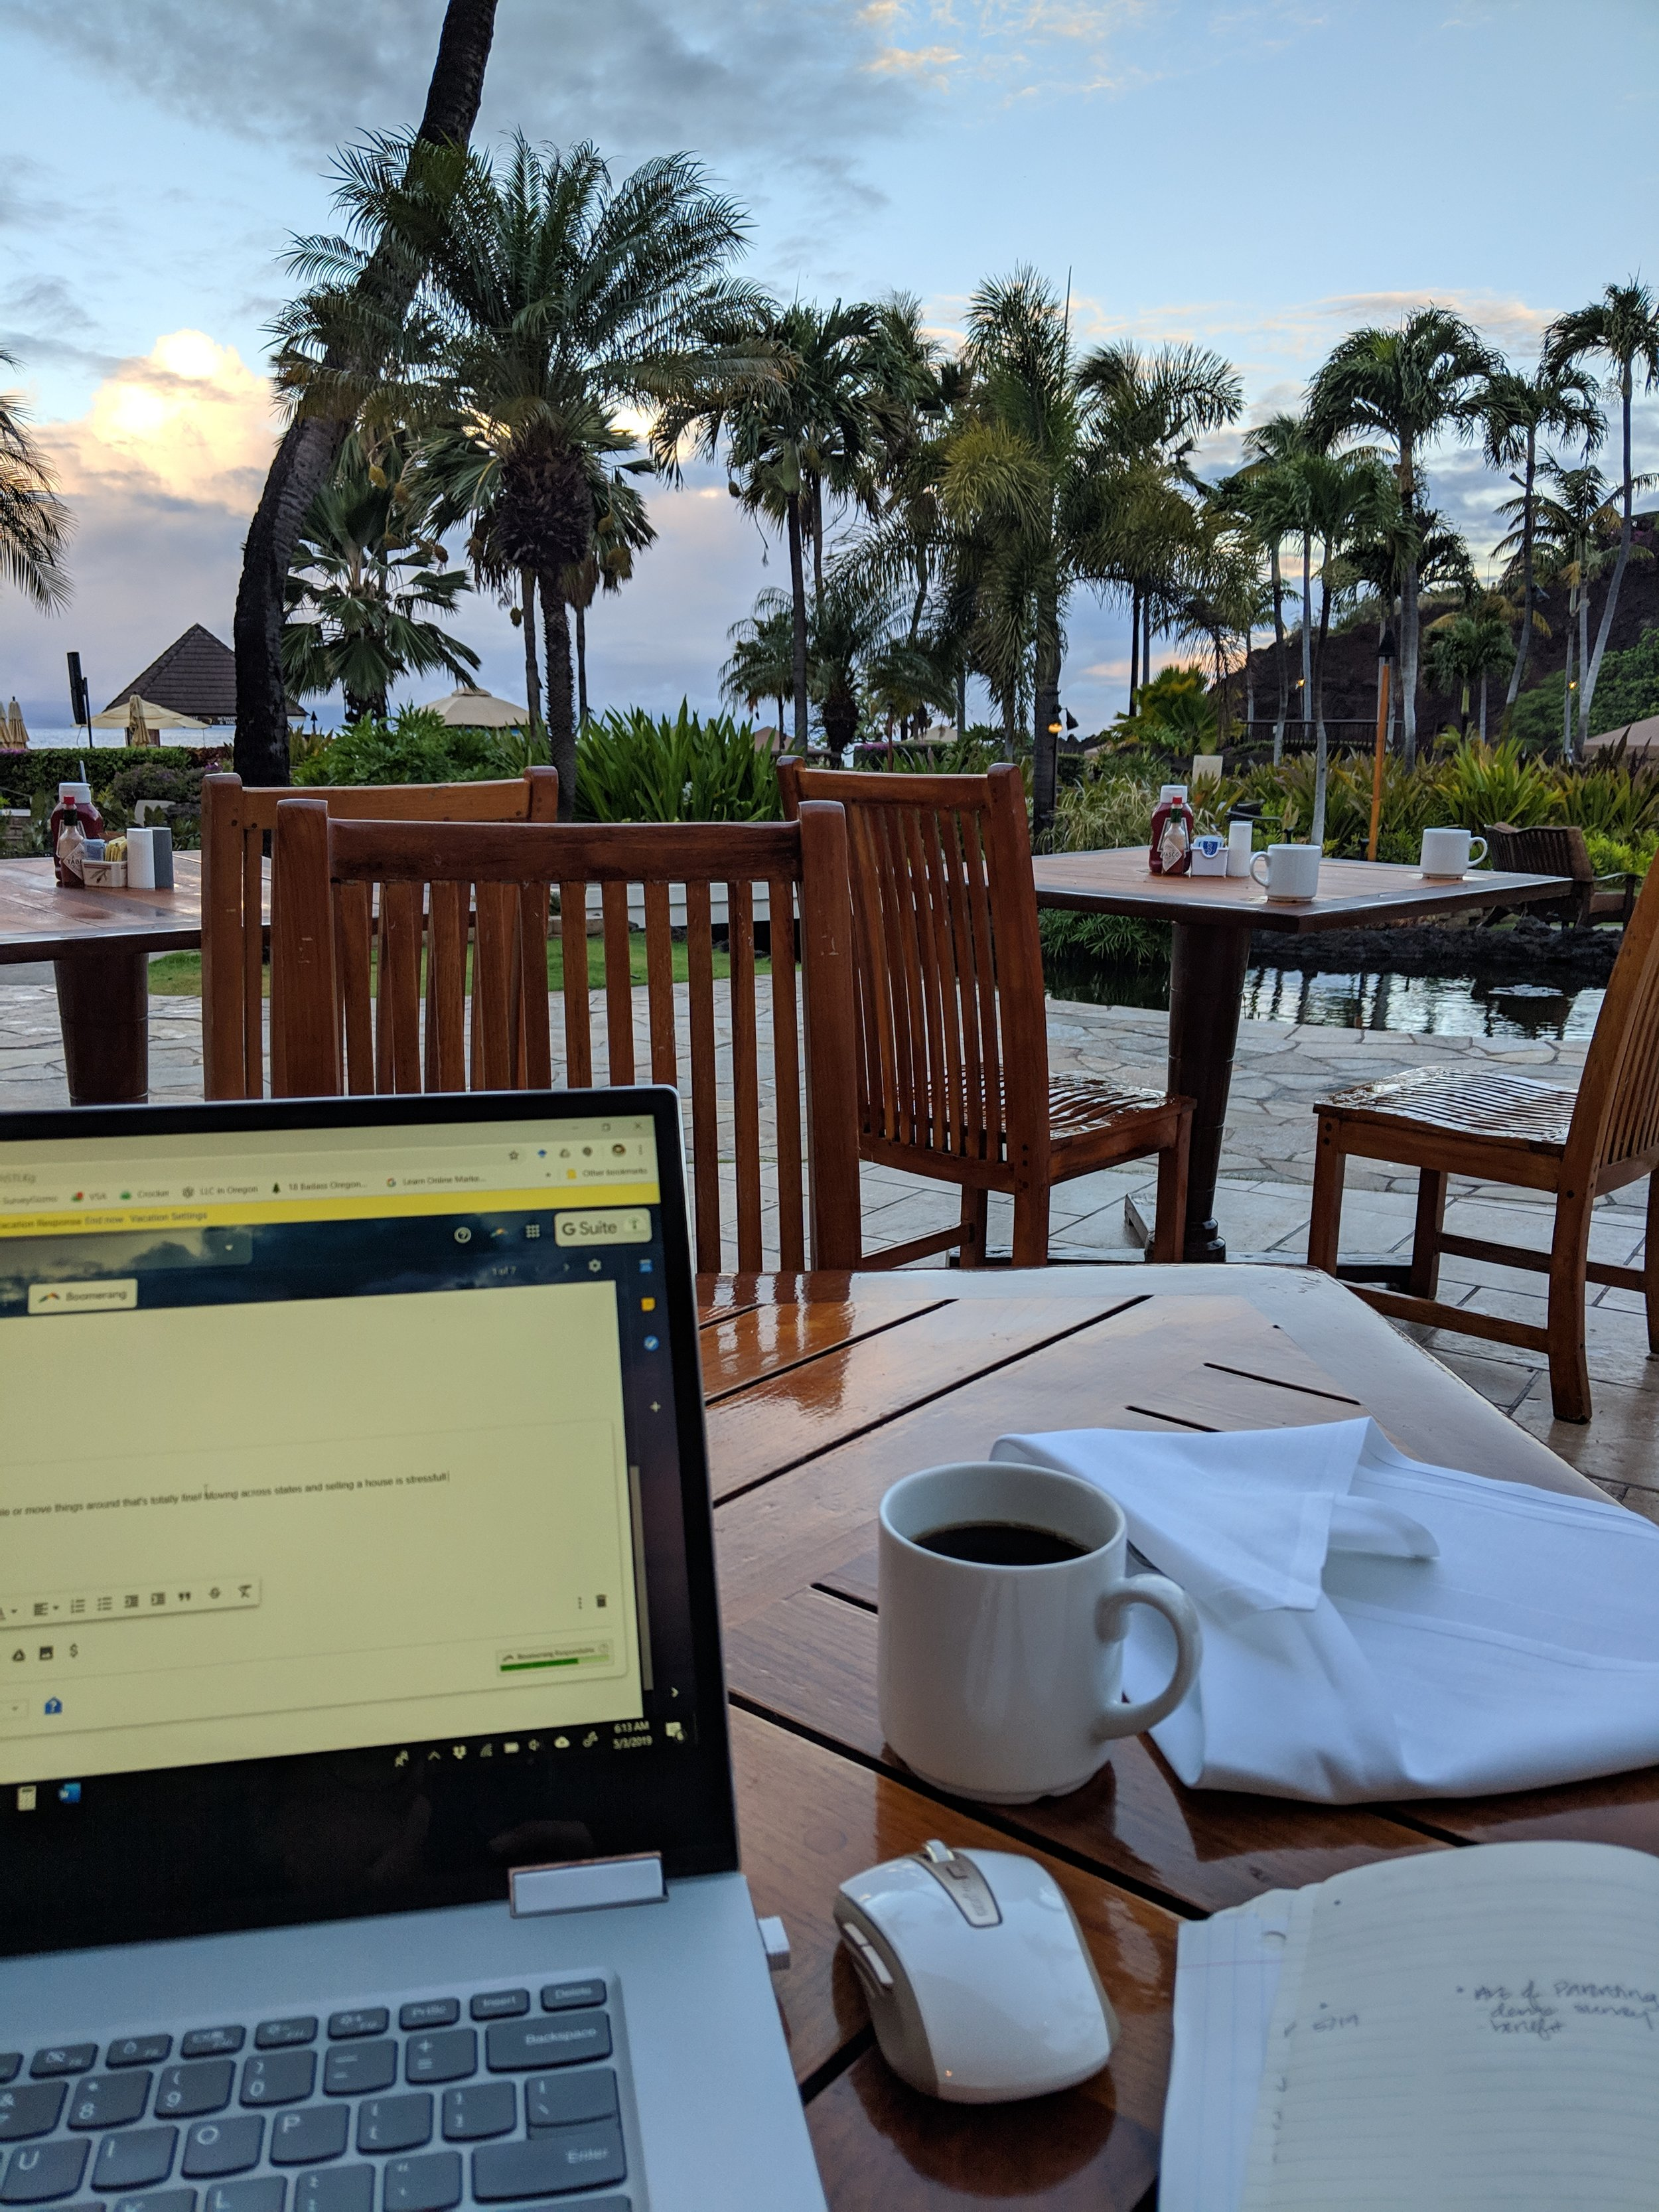 Responding to emails at 6 AM Hawaii time… before the restaurant was even open!